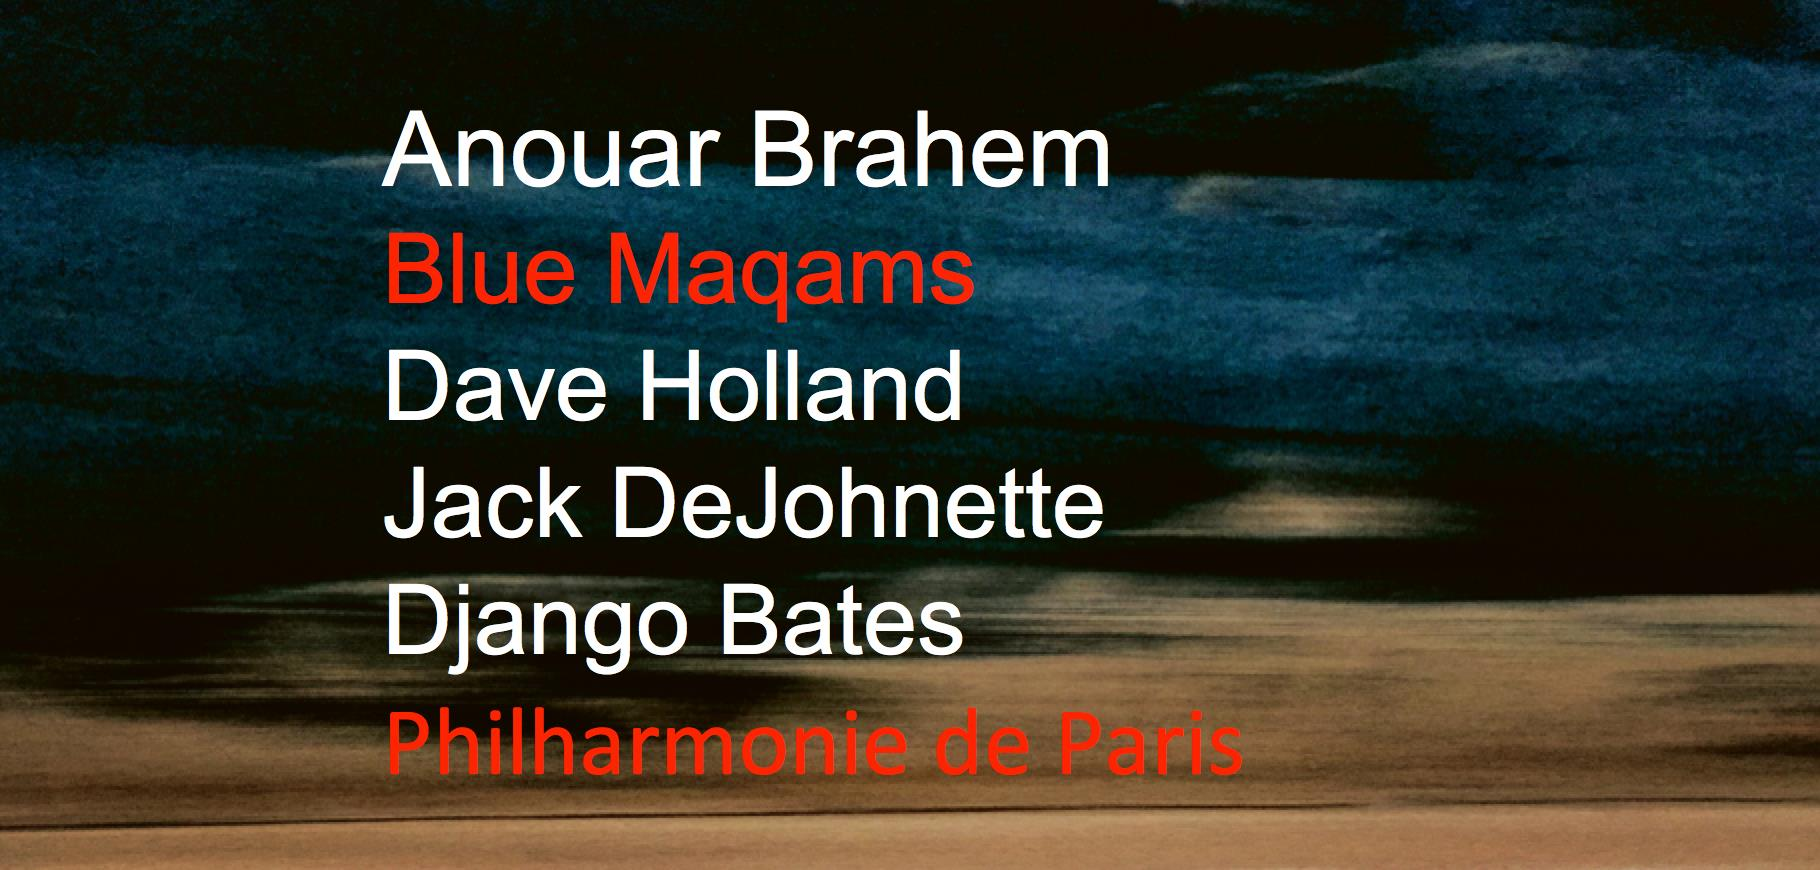 Anouar Brahem « Blue Maqams » at Philharmonie de Paris